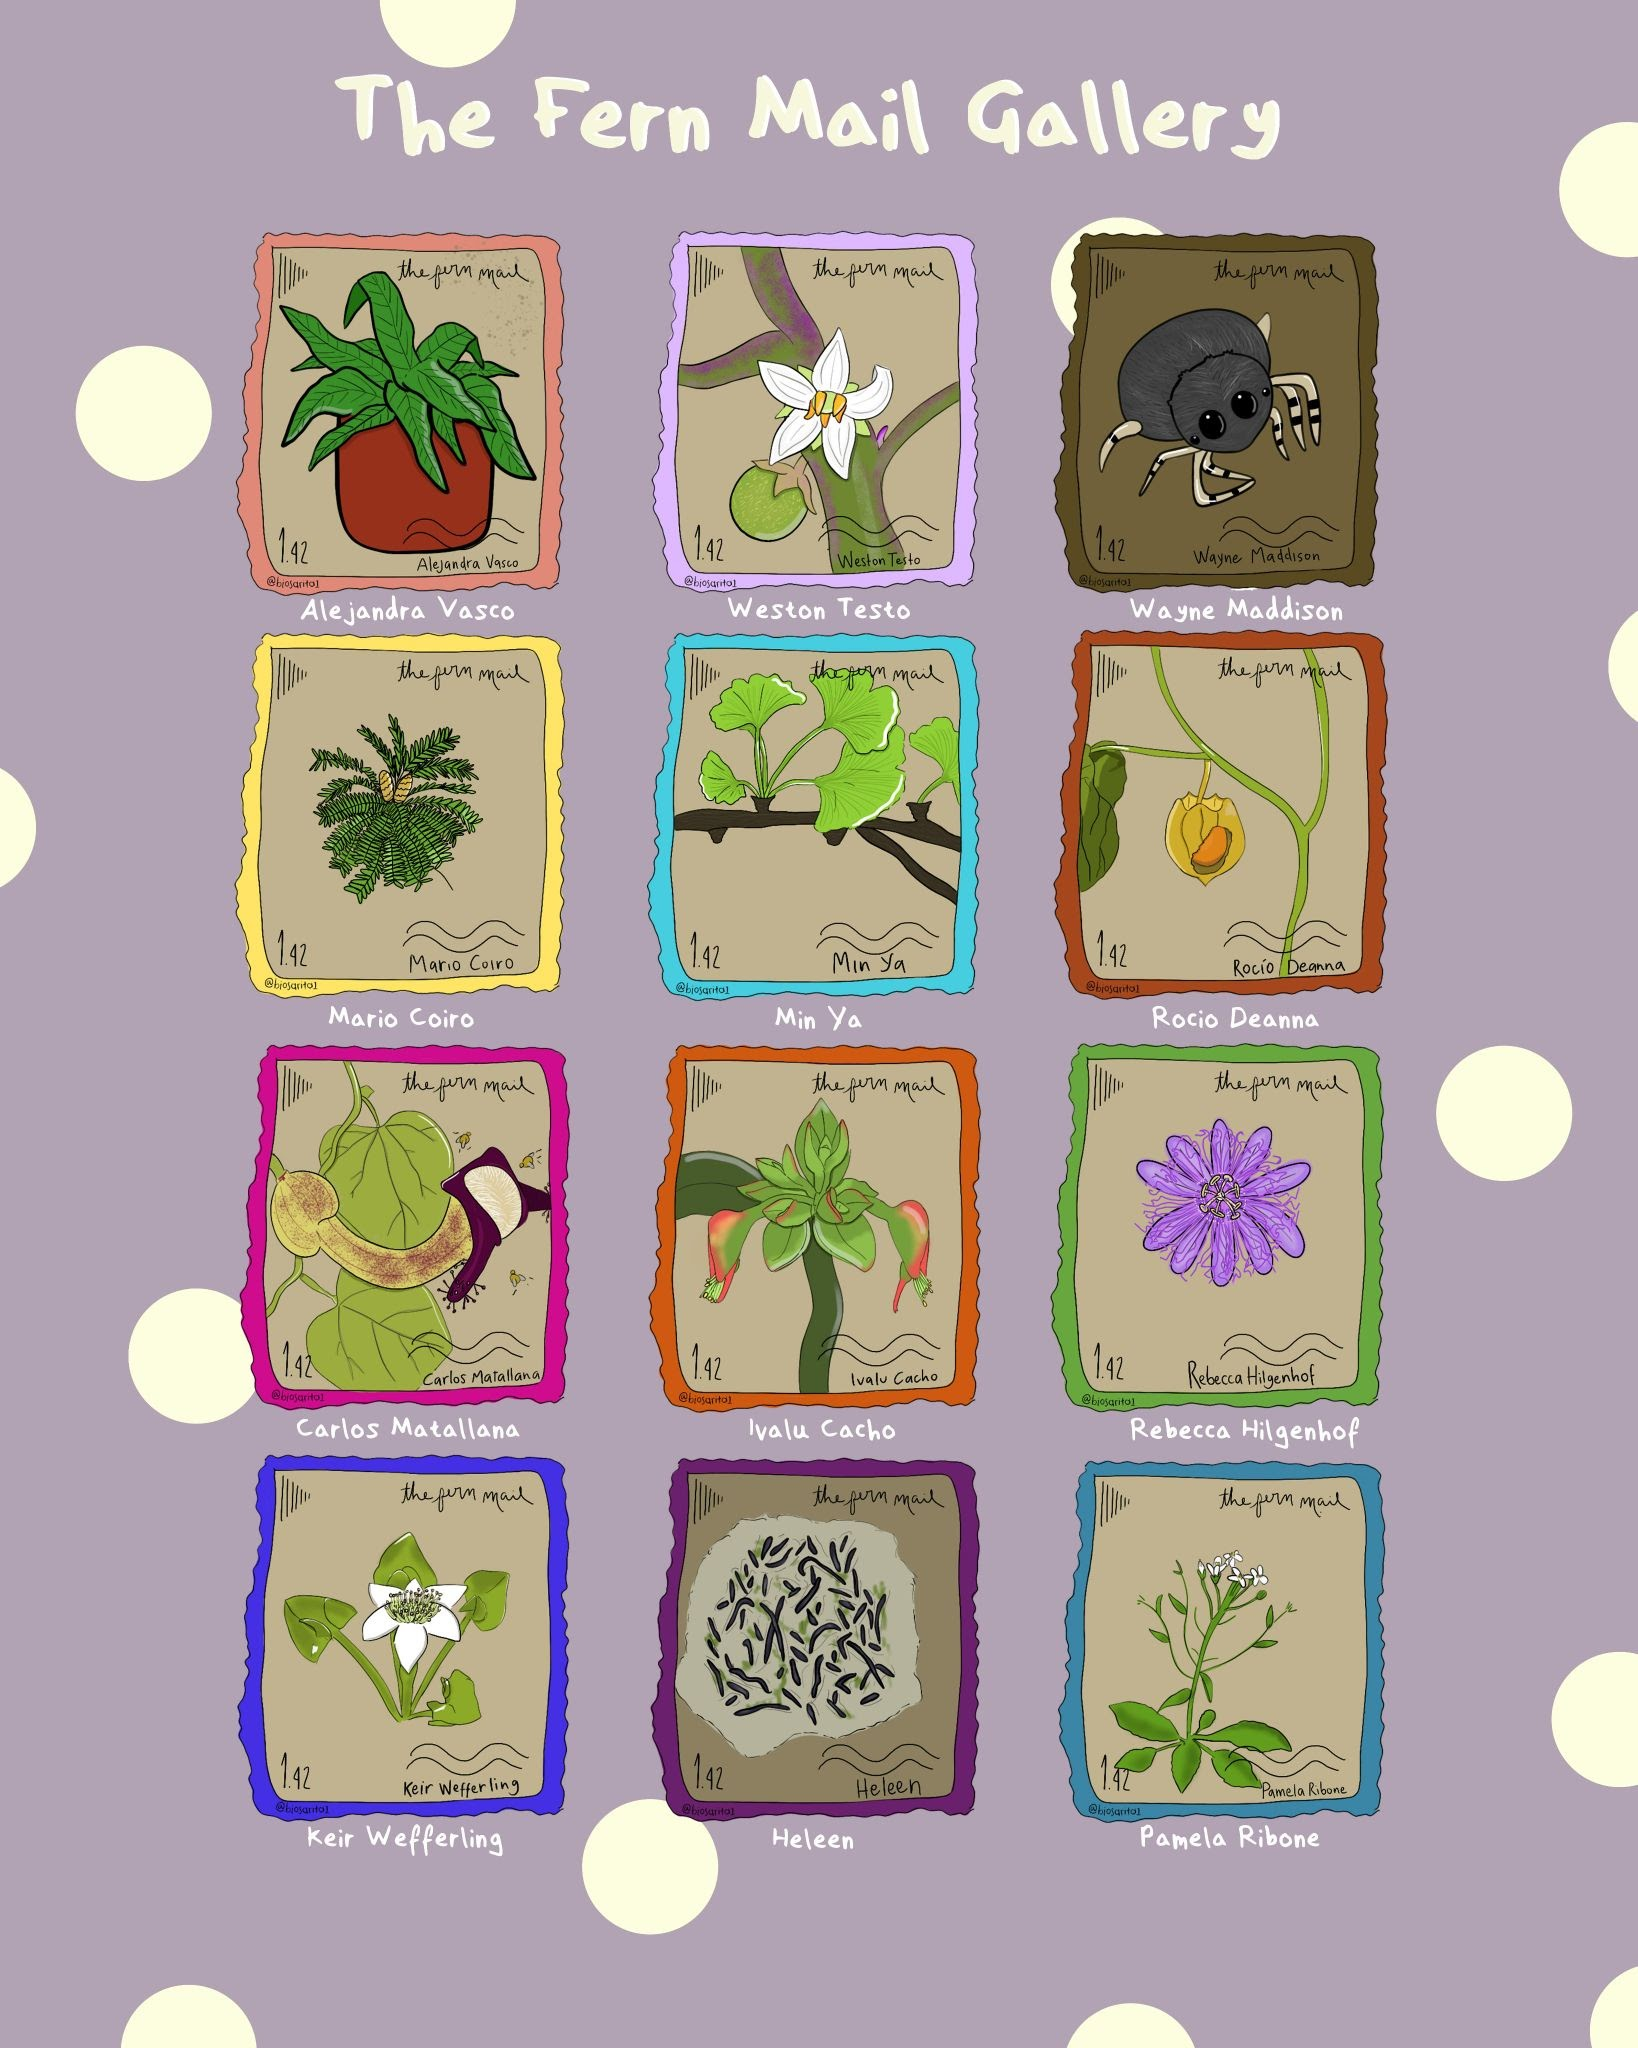 alt text: The Fern Mail Gallery by Sarita Muñoz-Gómez. On a lilac-coloured and sparsely polka-dotted background, twelve illustrated stamps are laid out in a 3 x 4 grid. From top left to bottom right: Fern in a peach frame for Alejandra Vasco, Solanum quitoense in a light purple frame for Weston Testo, Cylistela in a brown frame for Wayne Maddison, Cycad in a light yellow frame for Mario Coiro, Gingko in a light blue frame for Min Ya, Physalis in a burnt orange frame for Rocio Deanna, Aristolochia in a hot pink frame for Carlos Matallana, Euphorbia tithymaloides in an orange frame for Ivalu Cacho, Passiflora in a green frame for Rebecca Hilgenhof, a 6-petalled white flower surrounded by arrow-shaped leaves in a blue-purple frame for Keir Wefferling, a loosely circular light green mass containing worm-like black and green shapes in a purple frame for Heleen, and Arabidopsis in a blue frame for Pamela Ribone.